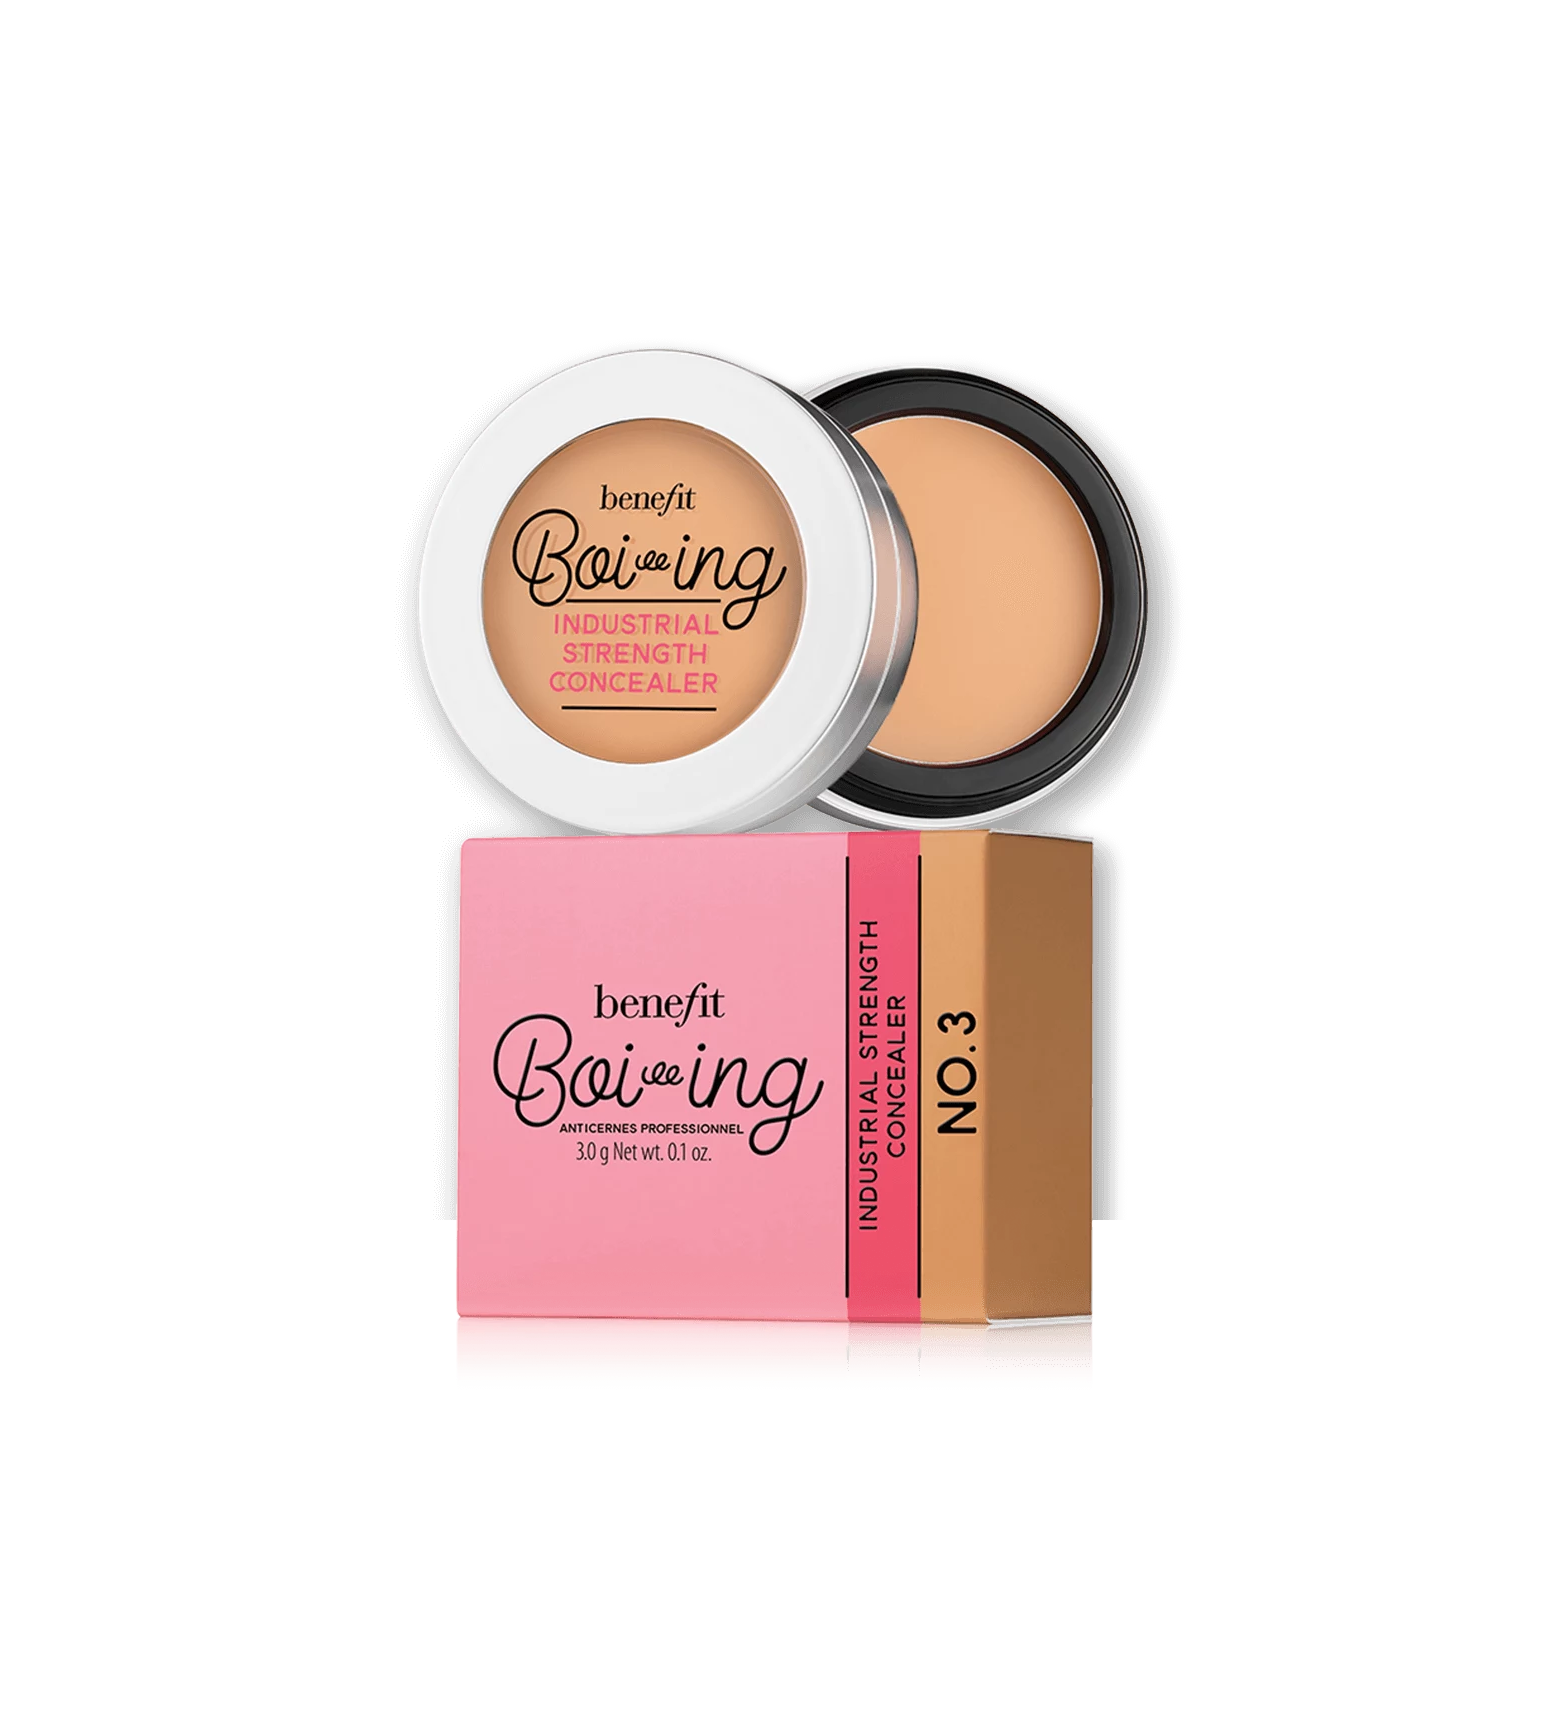 Benefit Is Launching at Nordstrom With Exclusive Products